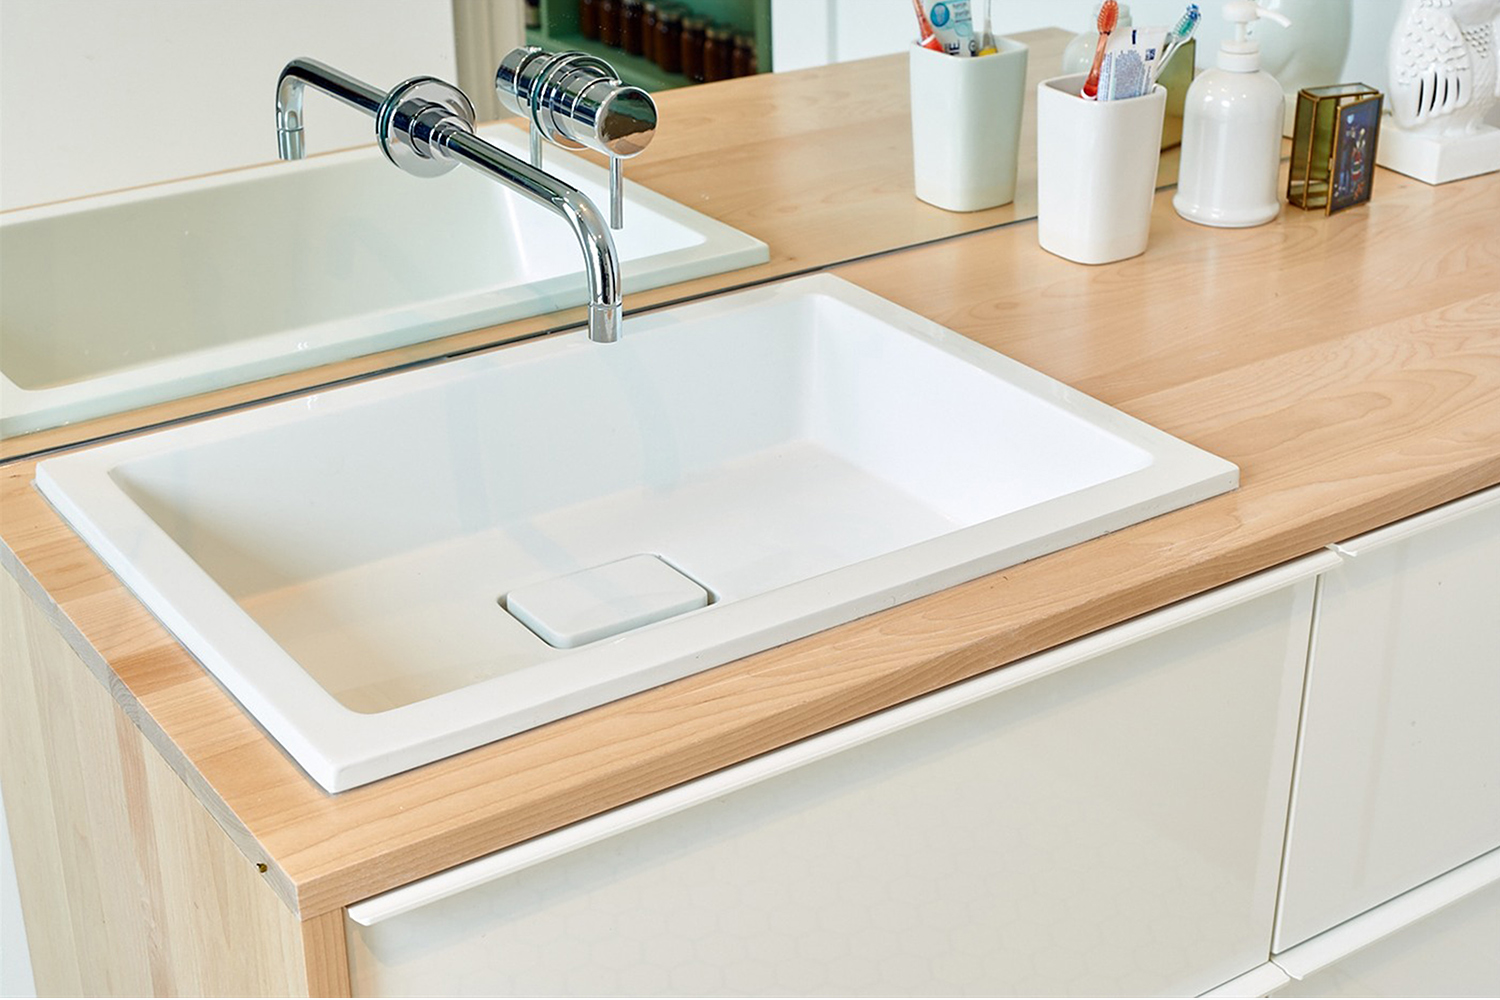 Hall cabinet with countertop and washbasin on the surface. Clean washbasin with drain cover and mirror wall fitting.